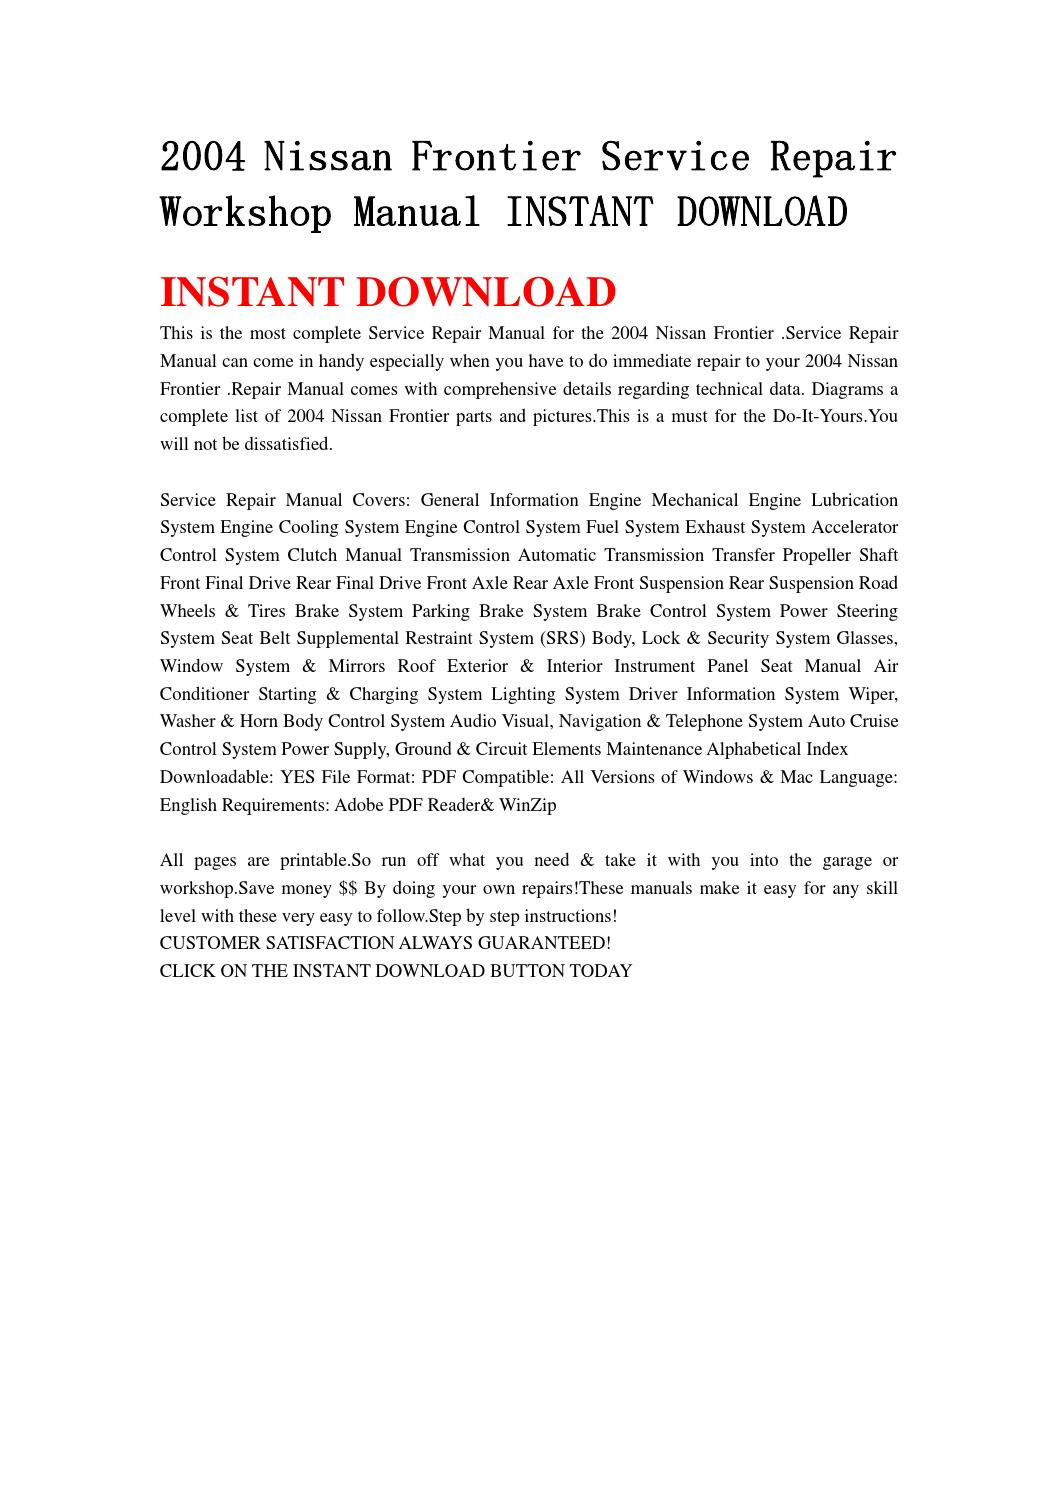 2004 Nissan Frontier Service Repair Workshop Manual Instant Download By Kmjsehfn Mksejfn